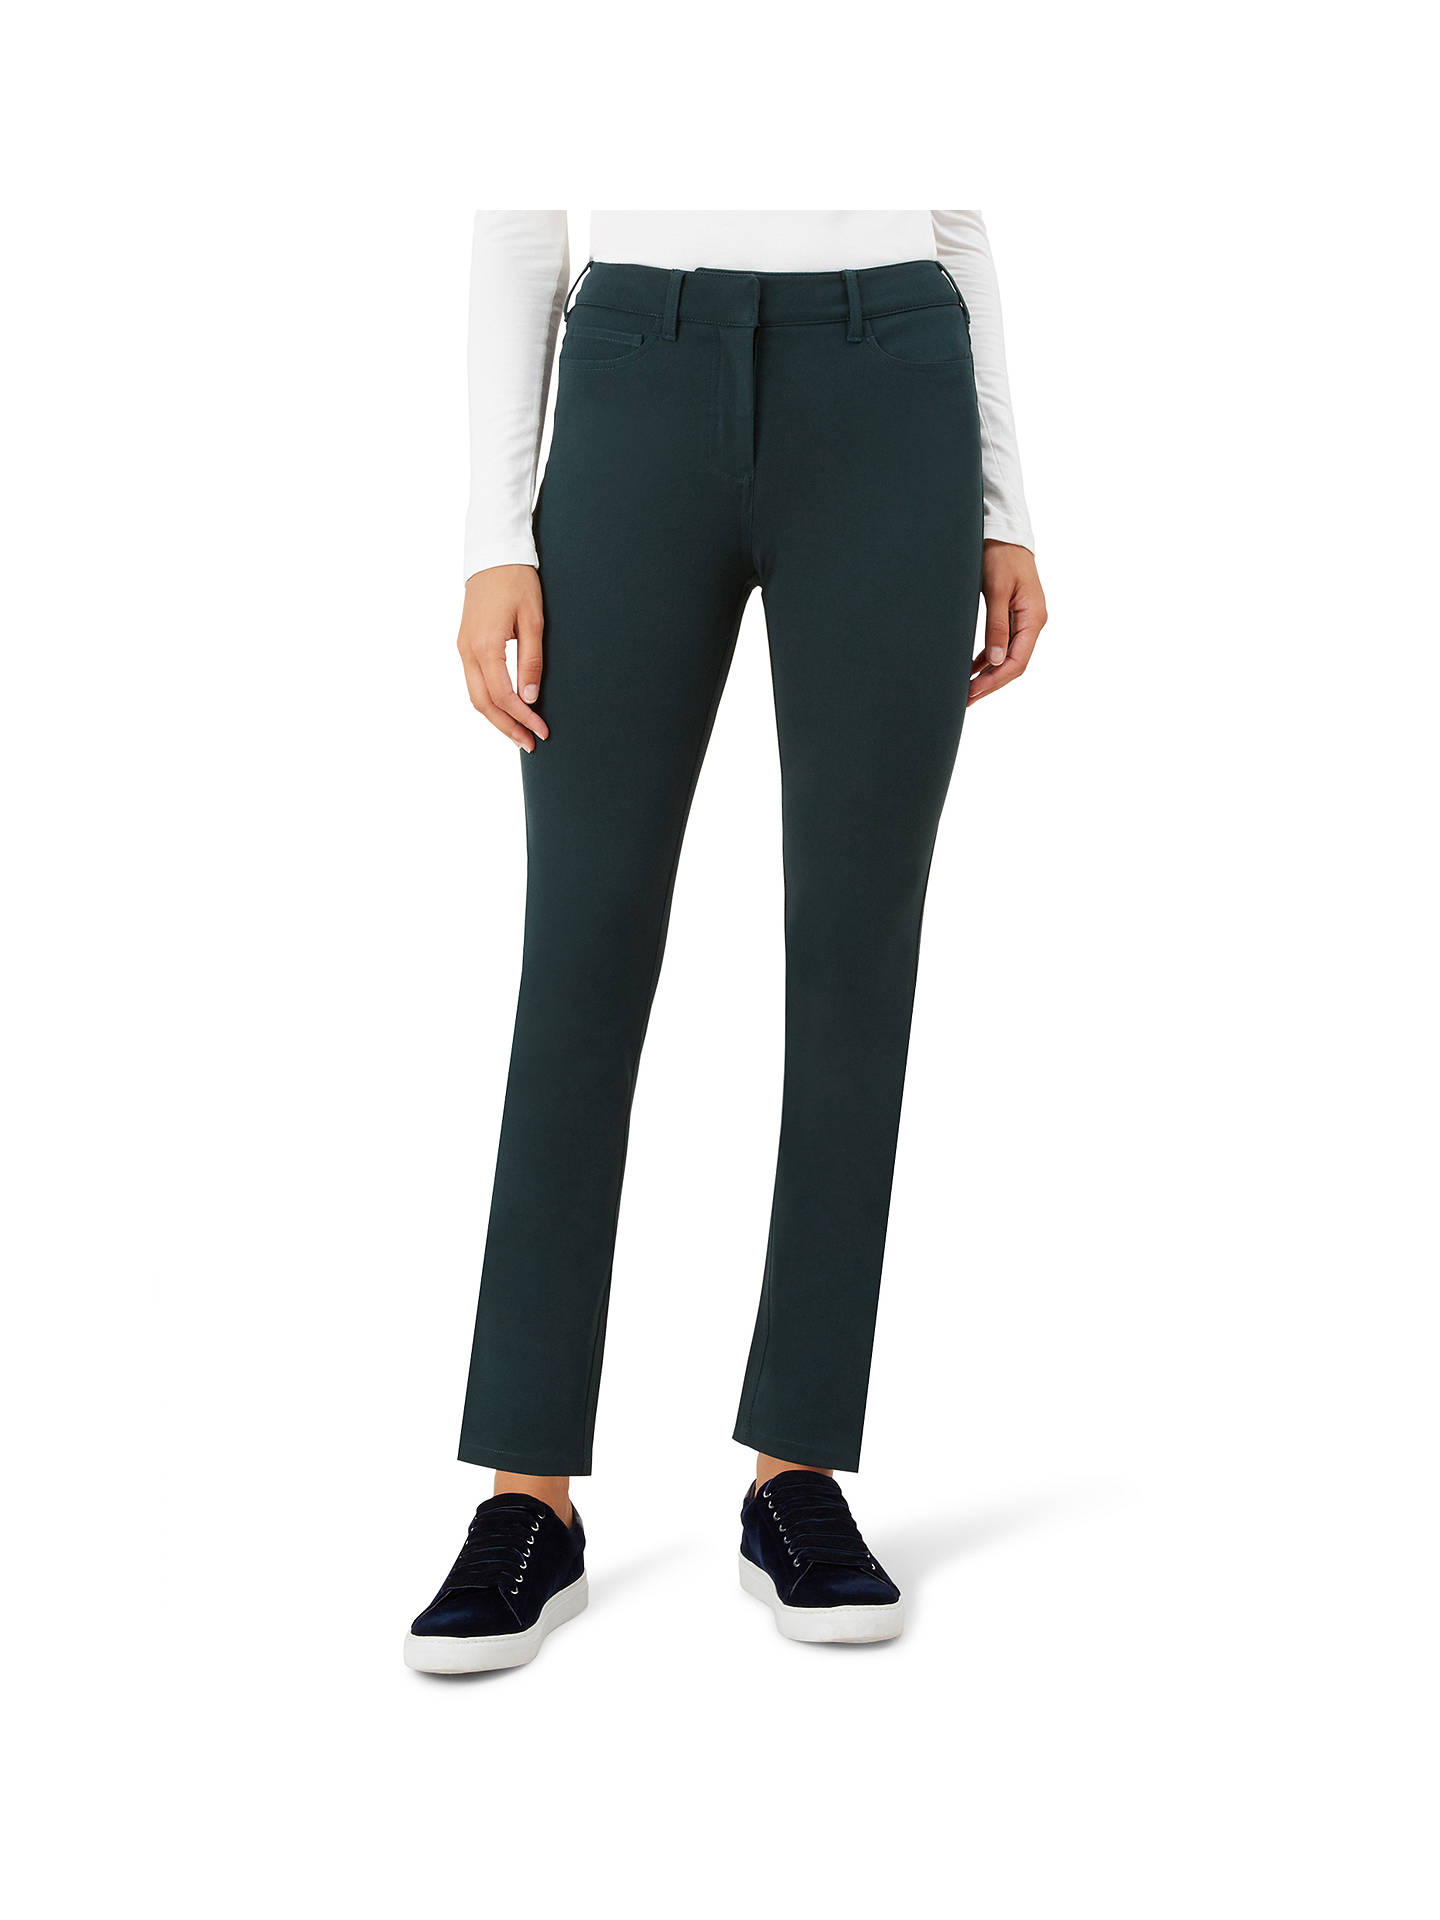 Buy Hobbs Regular Amanda Jeans, Forest Green, 6 Online at johnlewis.com